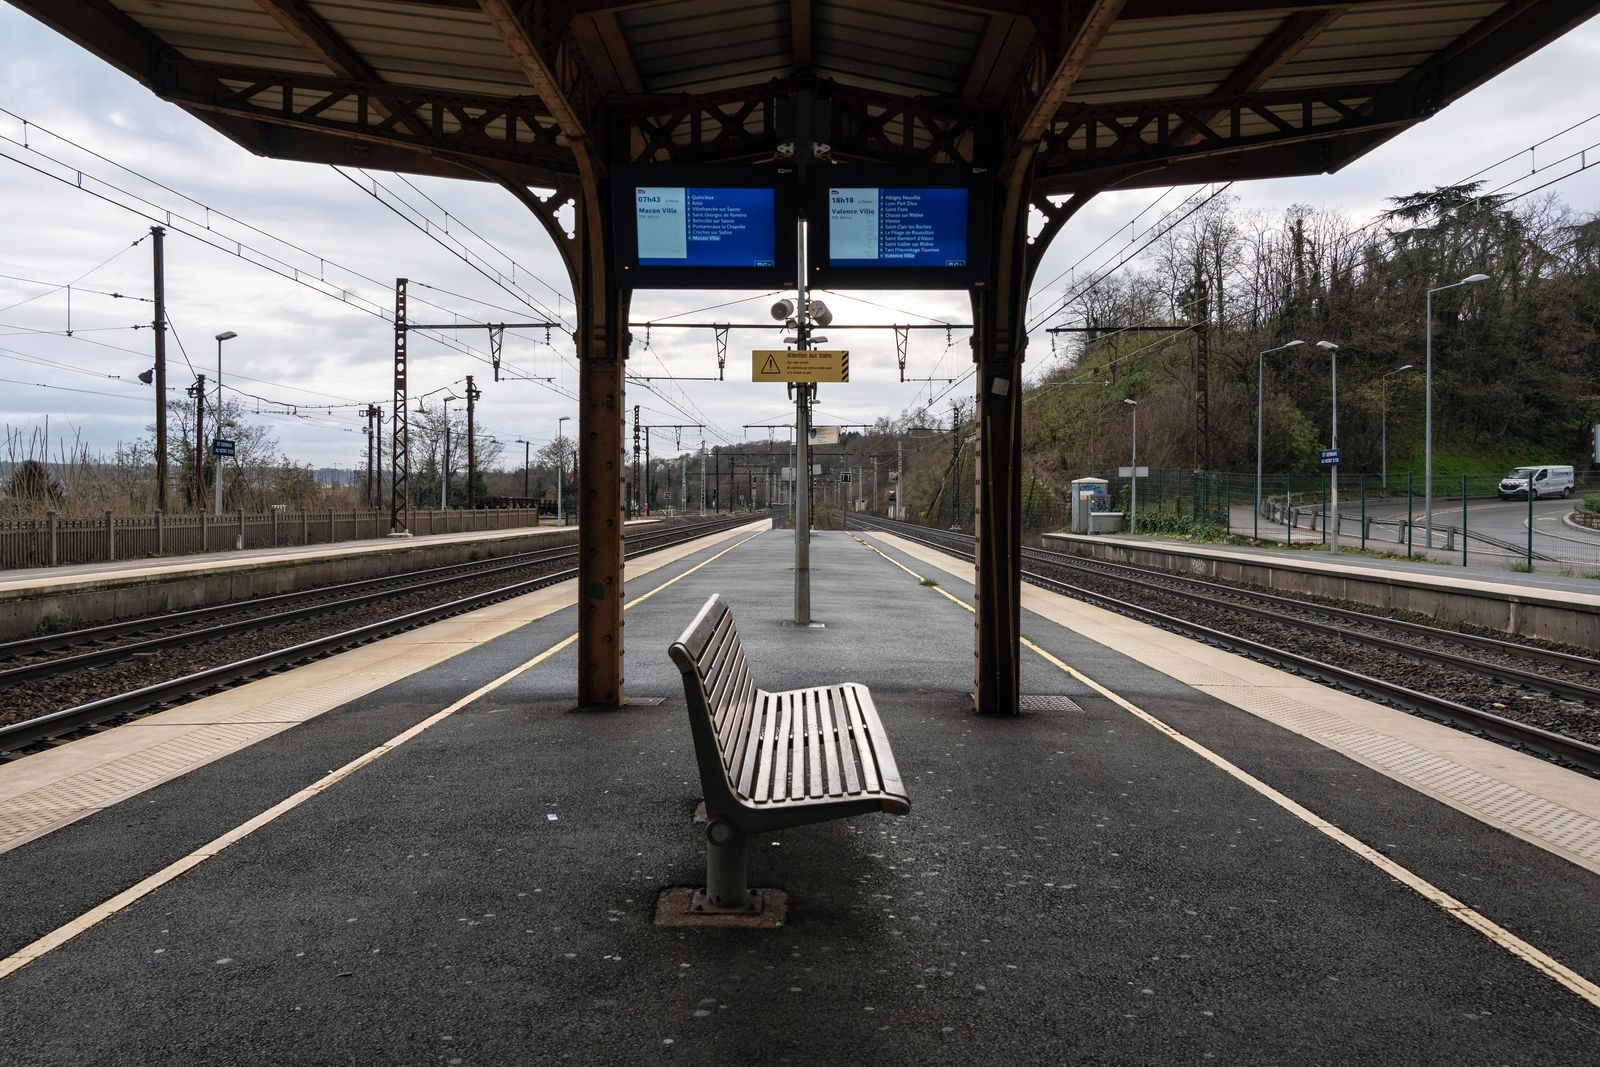 An empty platform is pictured during a railway strike at the Saint Germain au Mont d'Or train station, around Lyon, central France, Monday, Dec. 9, 2019. (AP Photo/Laurent Cipriani)